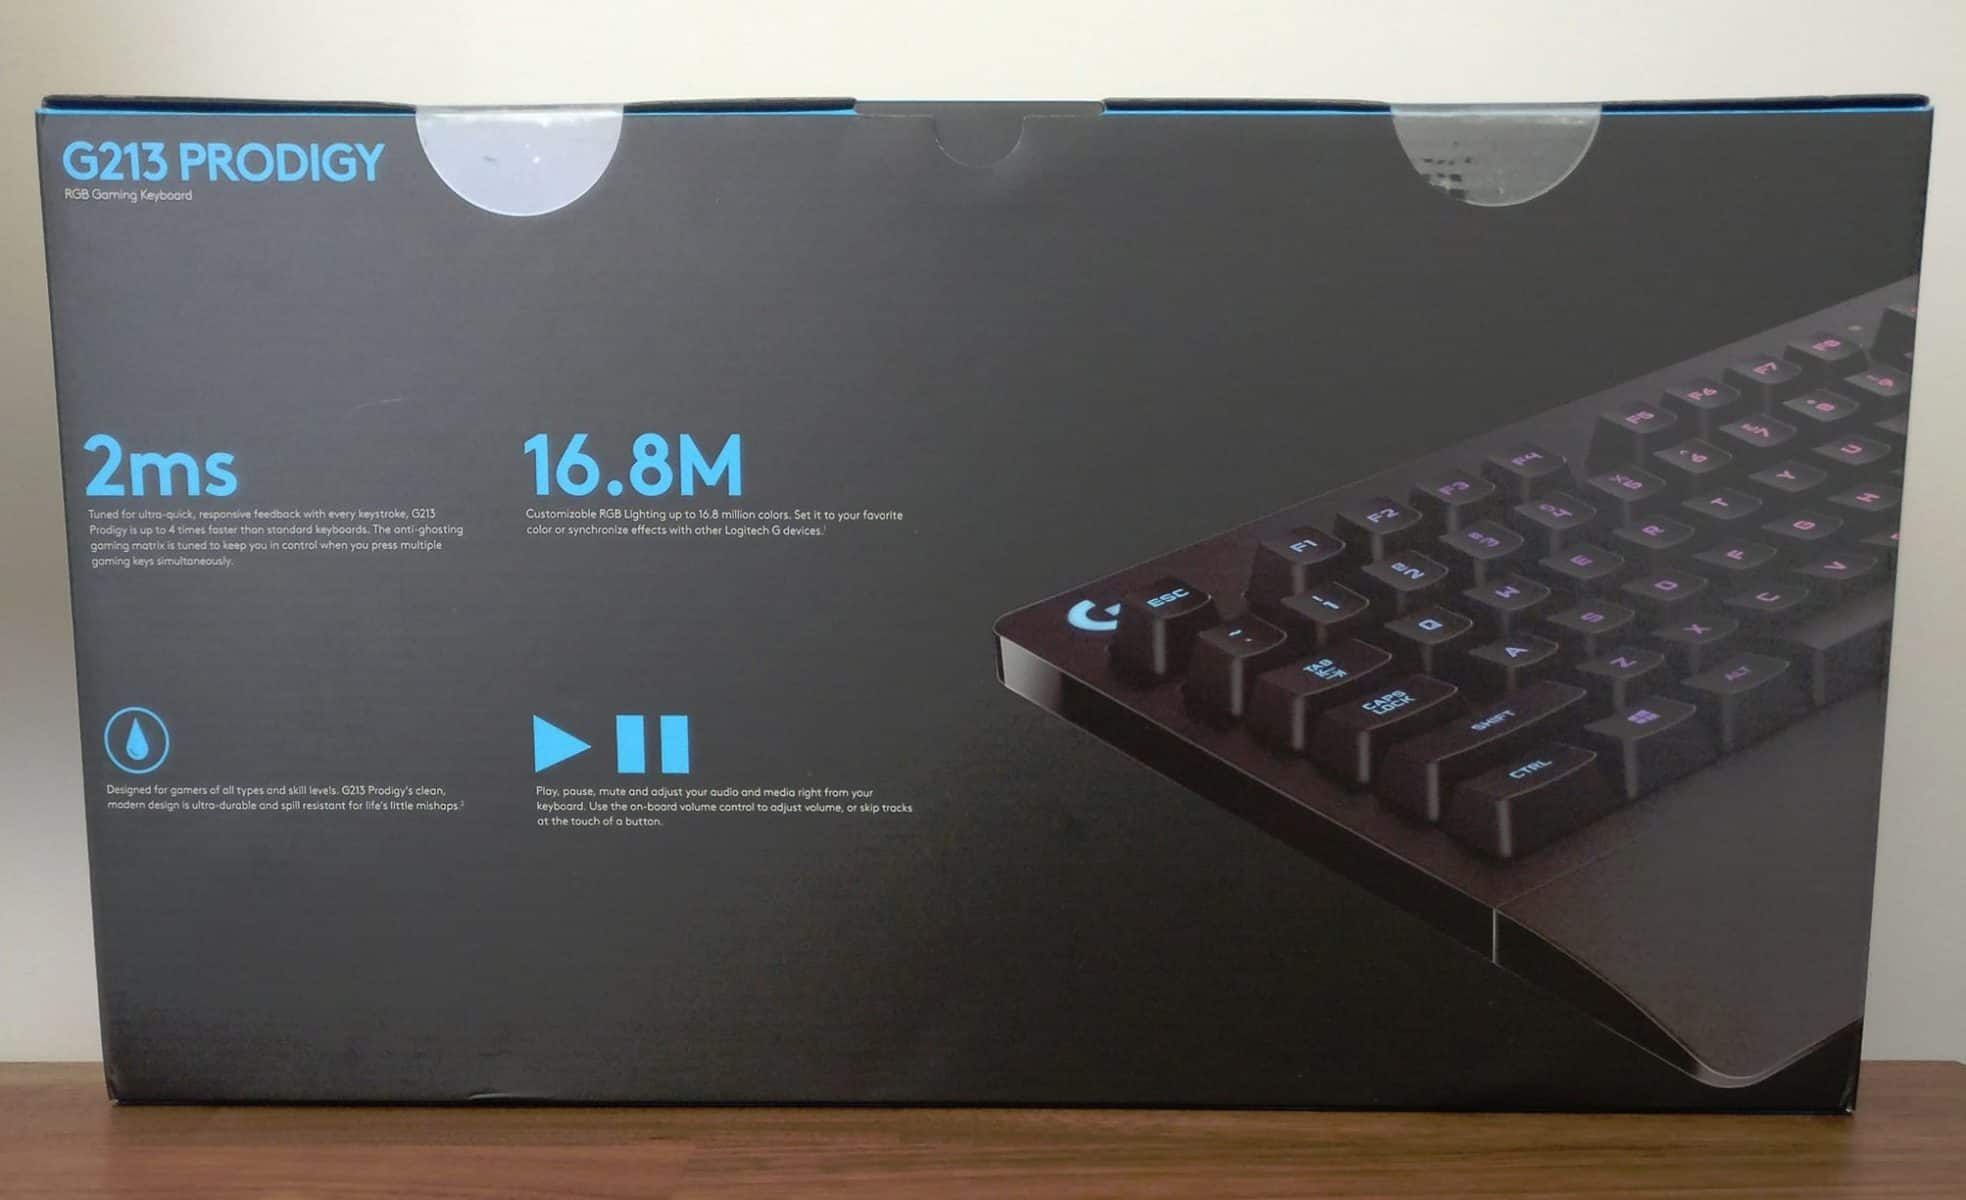 Logitech G213 Prodigy Rgb Gaming Keyboard Review The Streaming Blog